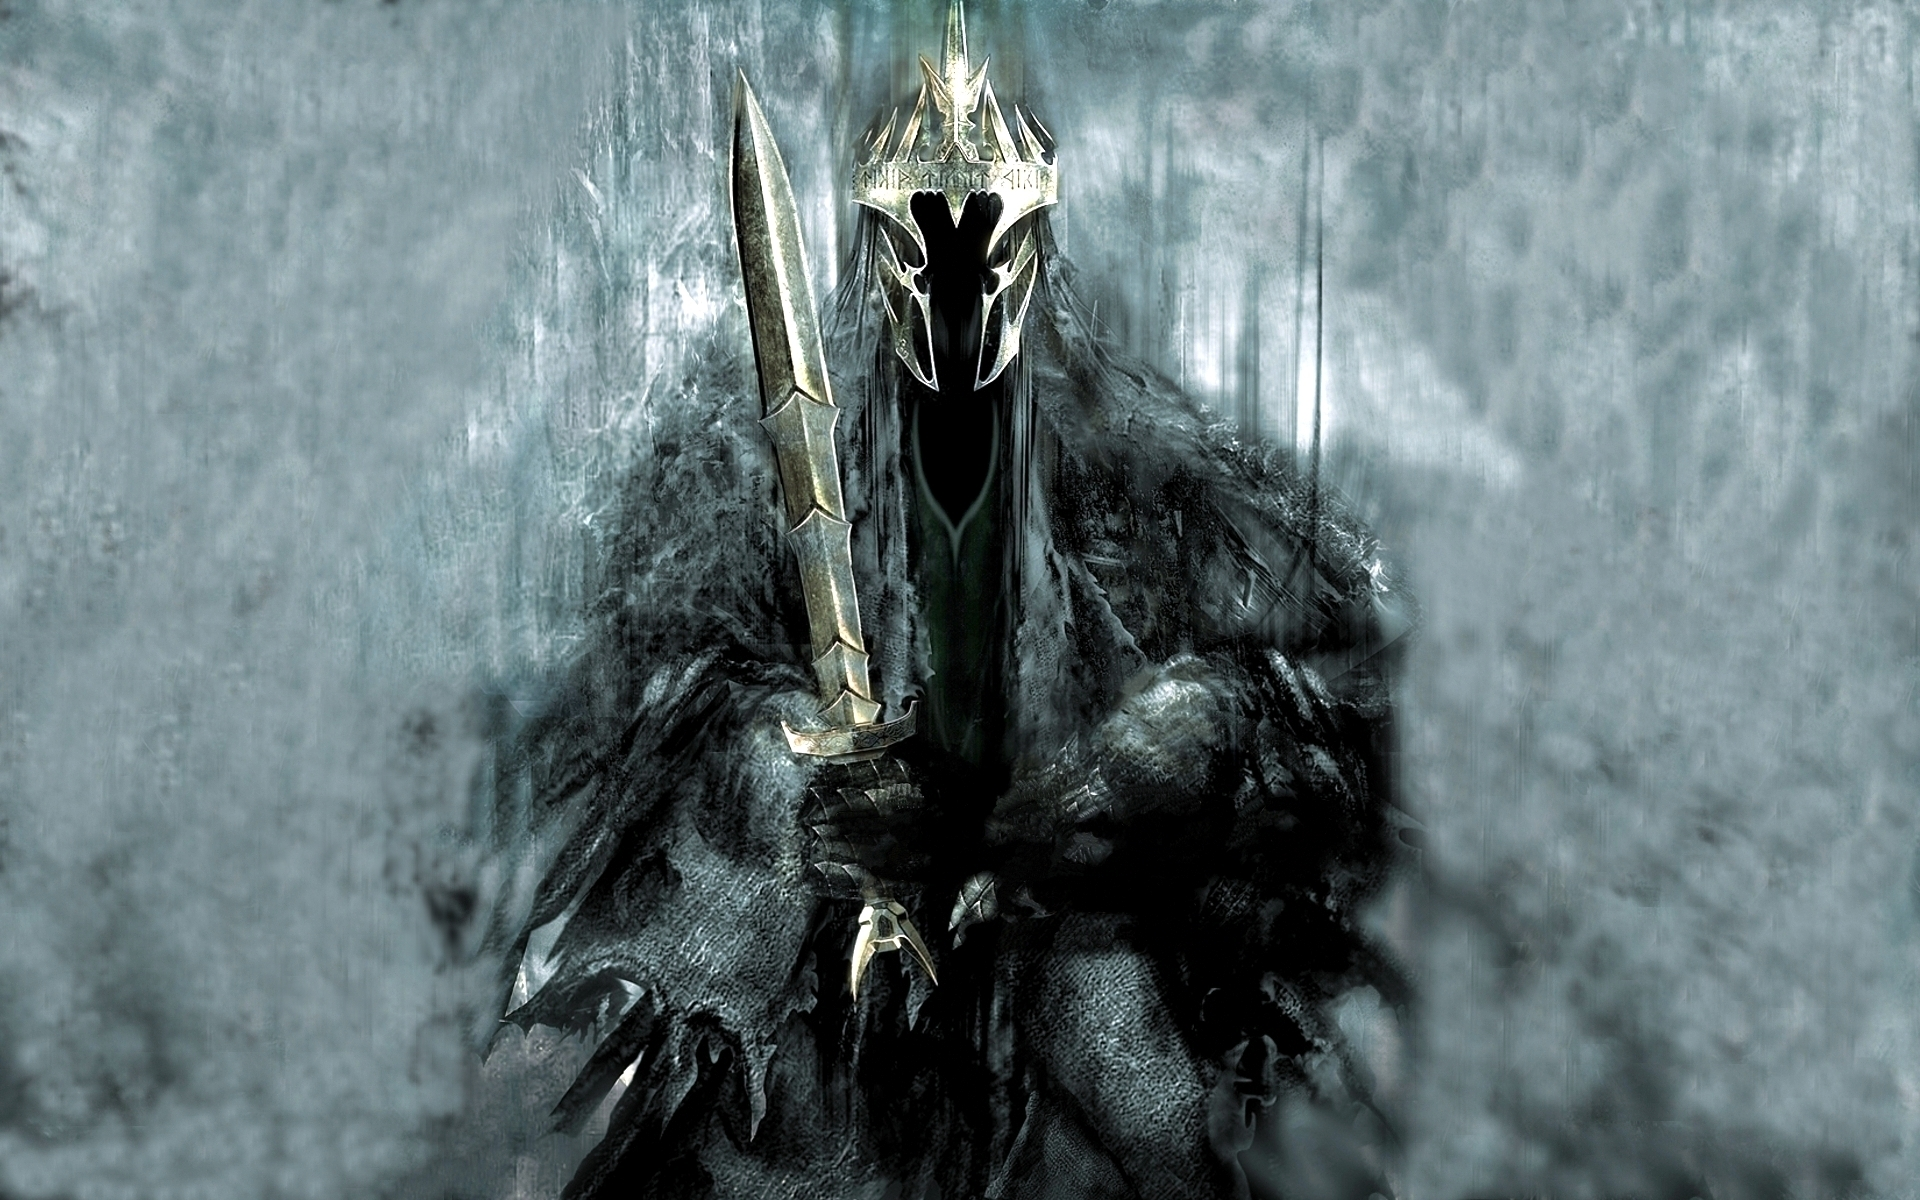 The Witch King   Lord of the Rings Wallpaper 24642267 1920x1200